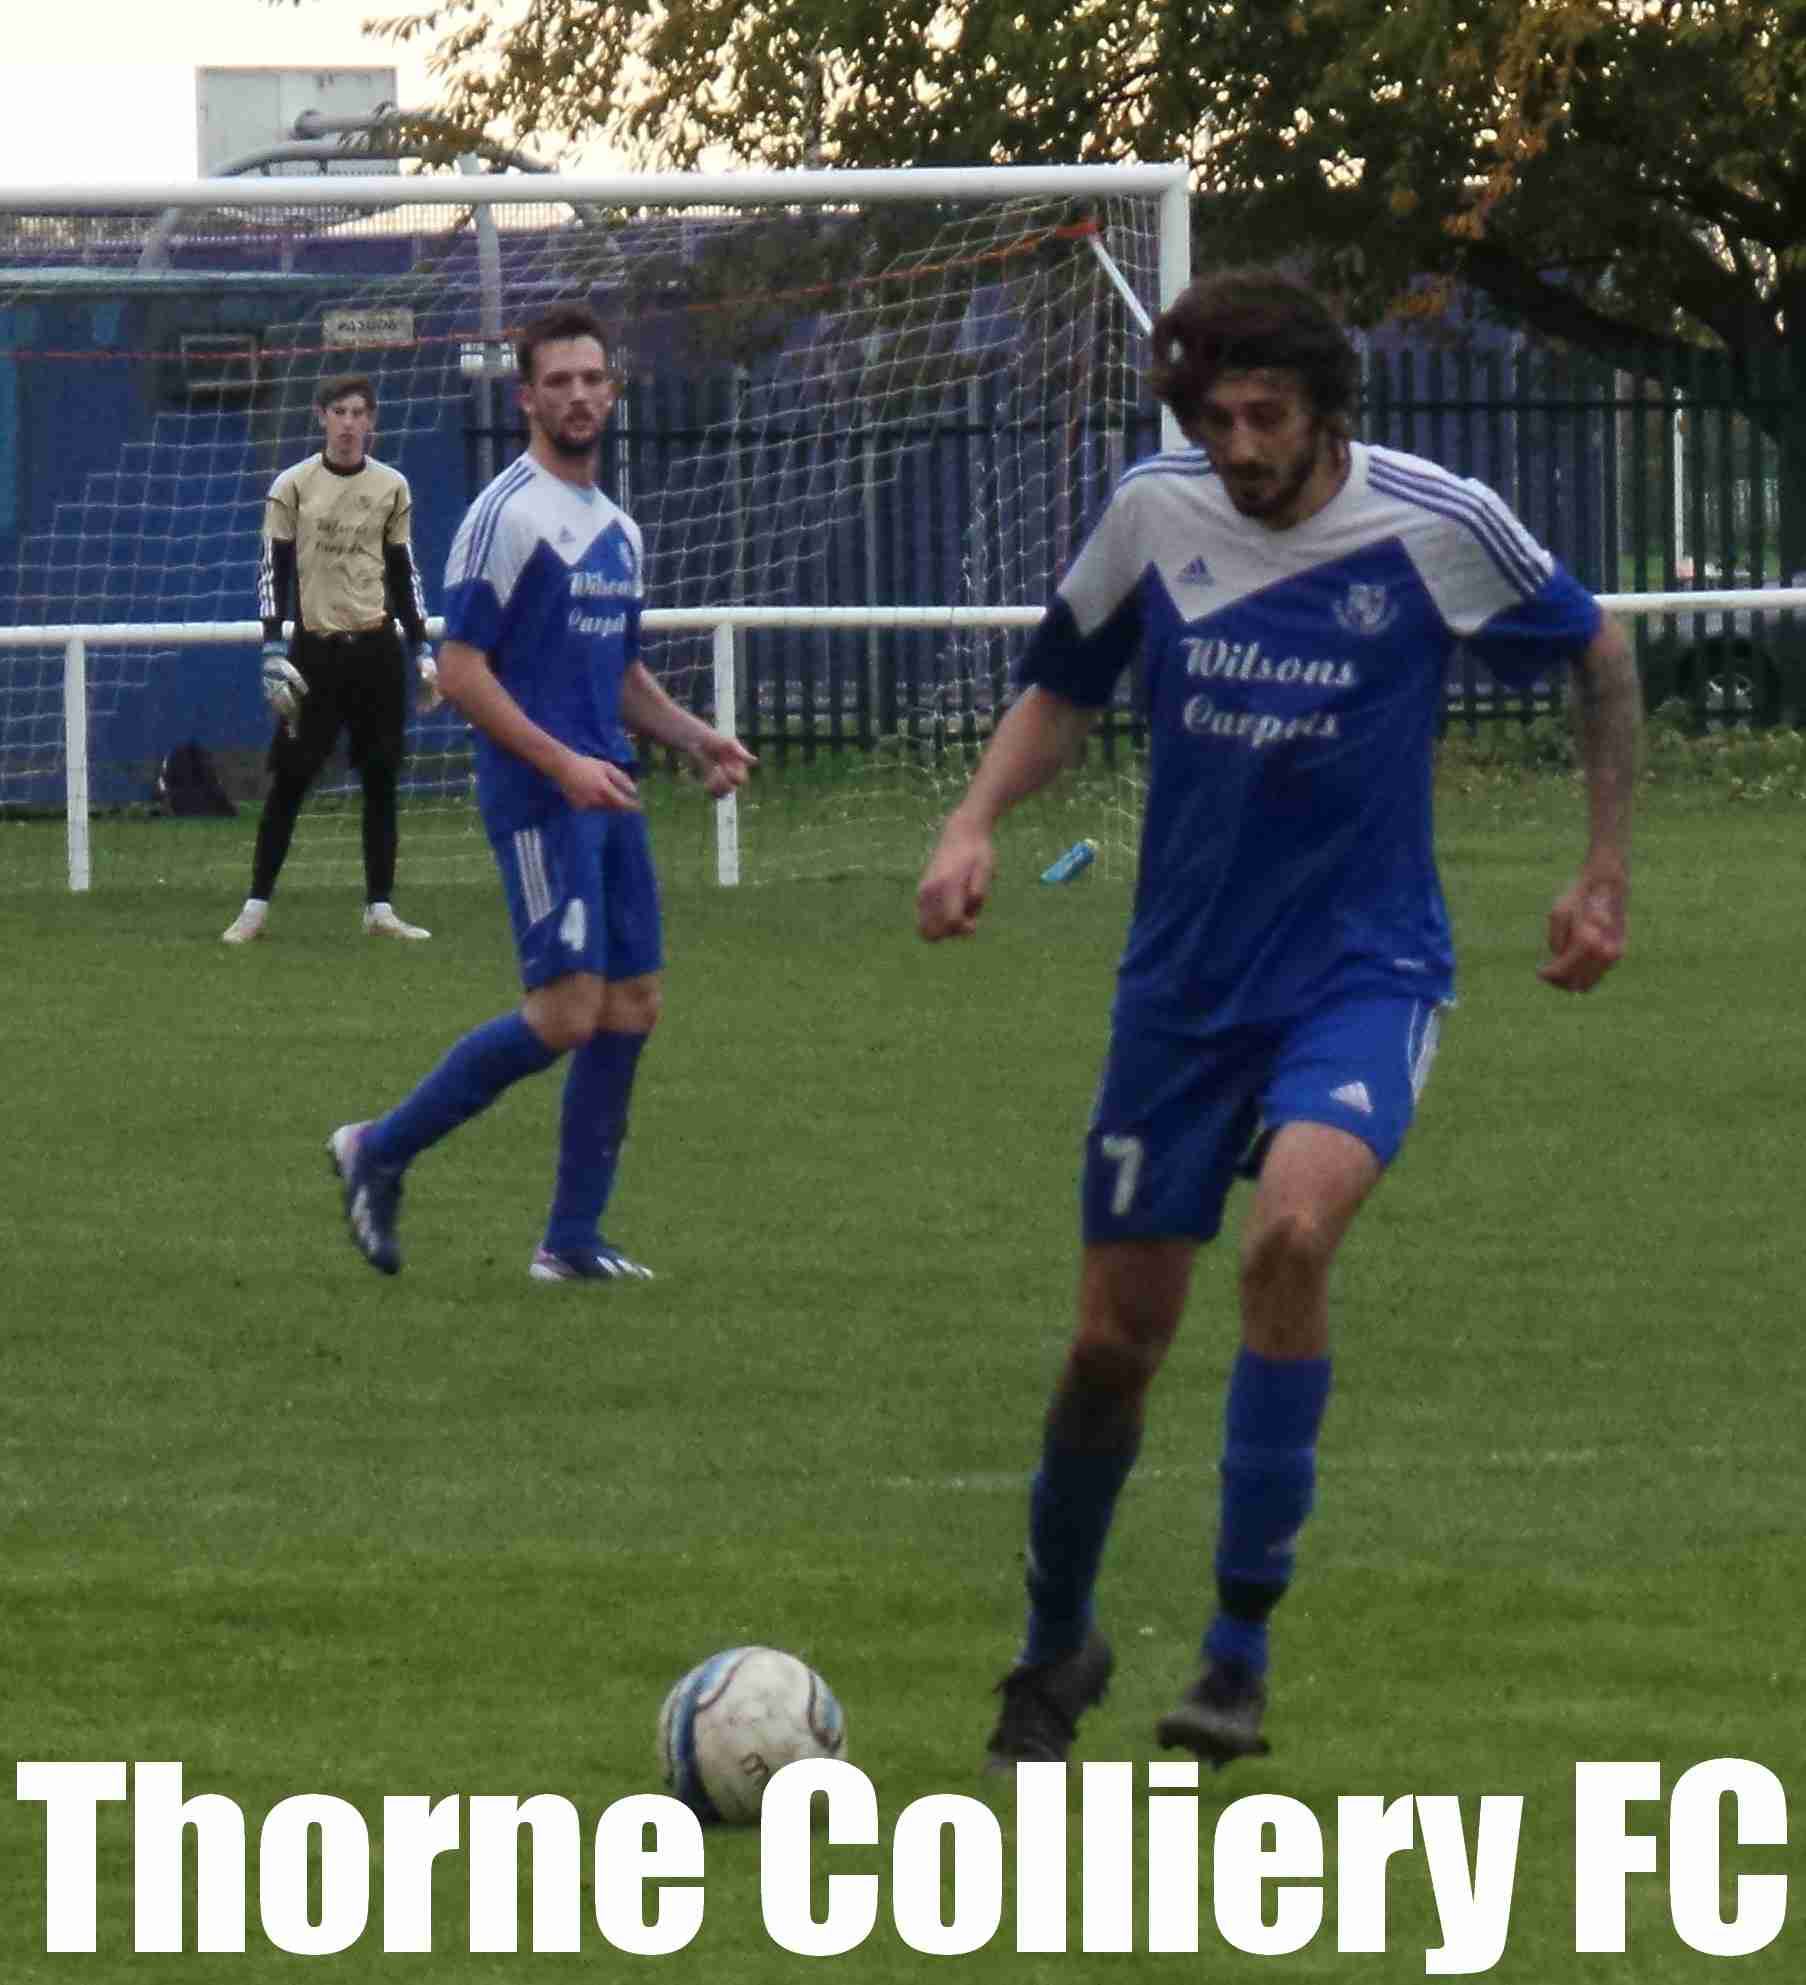 Thorne Colliery v Askern